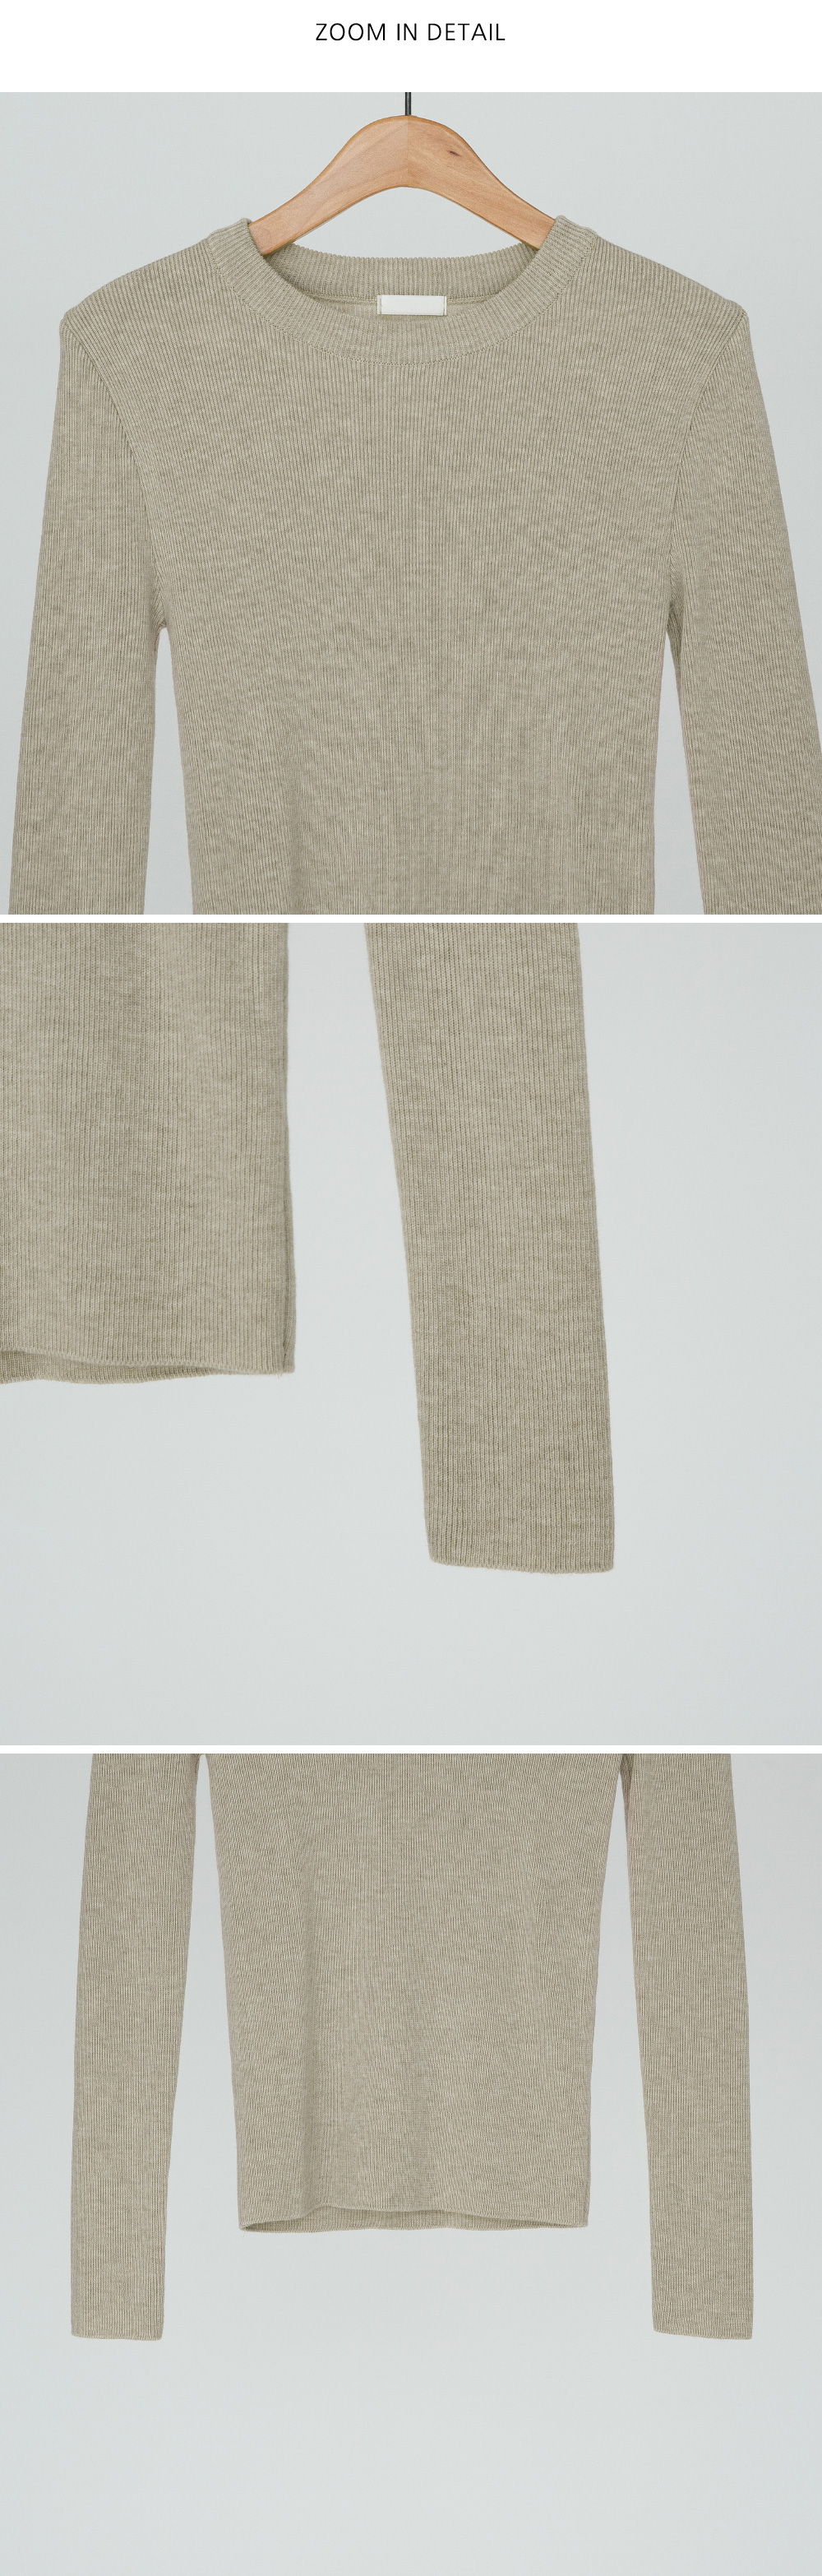 Daily Slim Fit Goal Knit Tee-knit